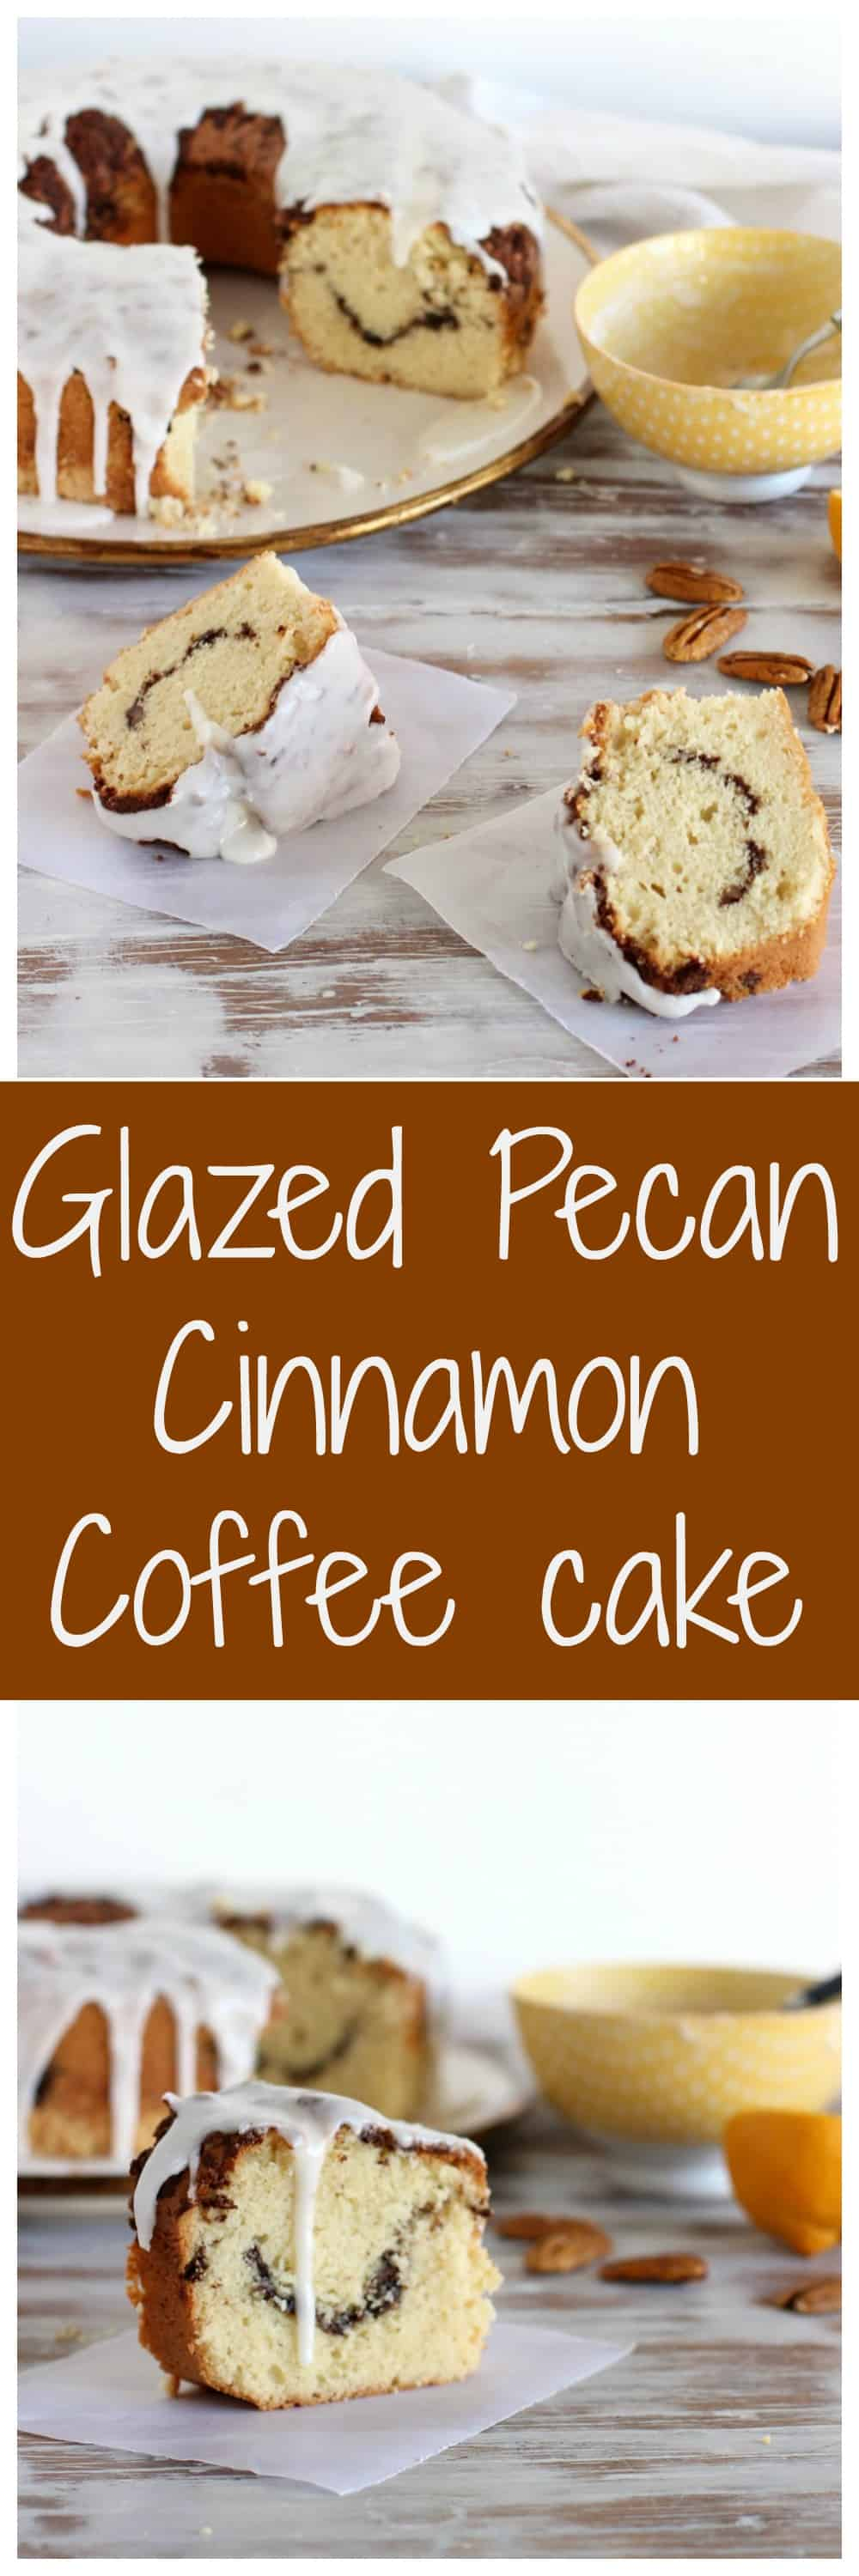 GLAZED PECAN CINNAMON COFFEE CAKE is so amazing! Full of flavor, perfect crumb and a streusel that will keep you coming for more. #baking #coffeecake #pecan #cake